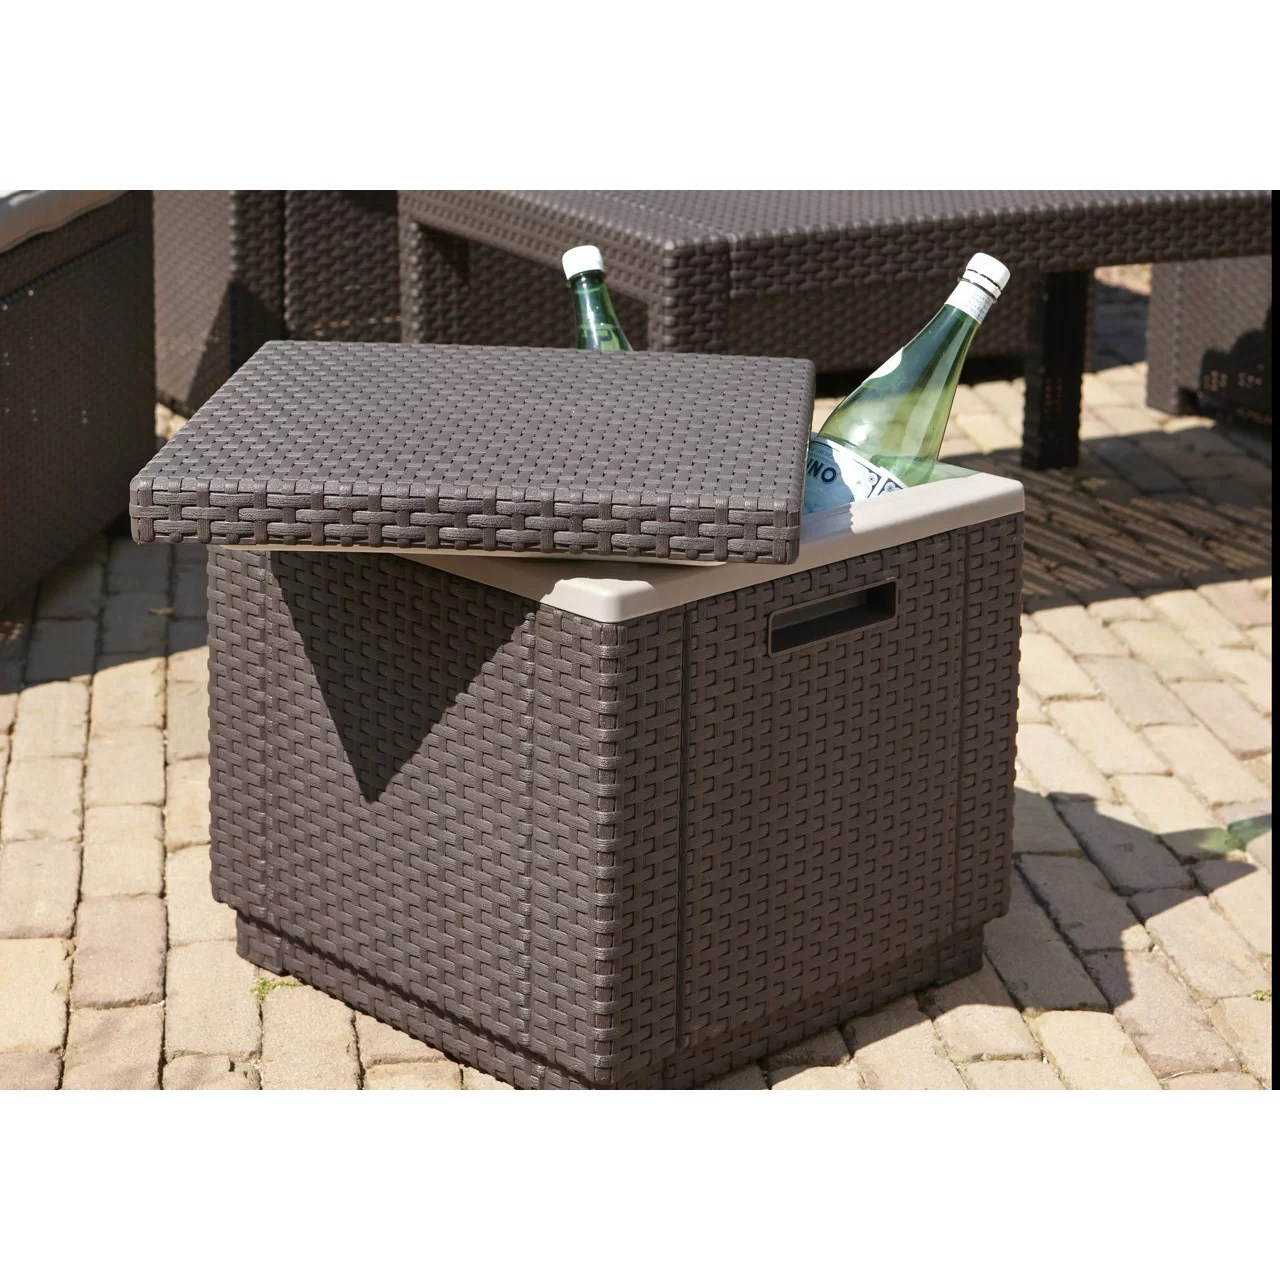 SunTime Outdoor Living Ice Cube Cooler & Reviews | Wayfair on Suntime Outdoor Living  id=65748